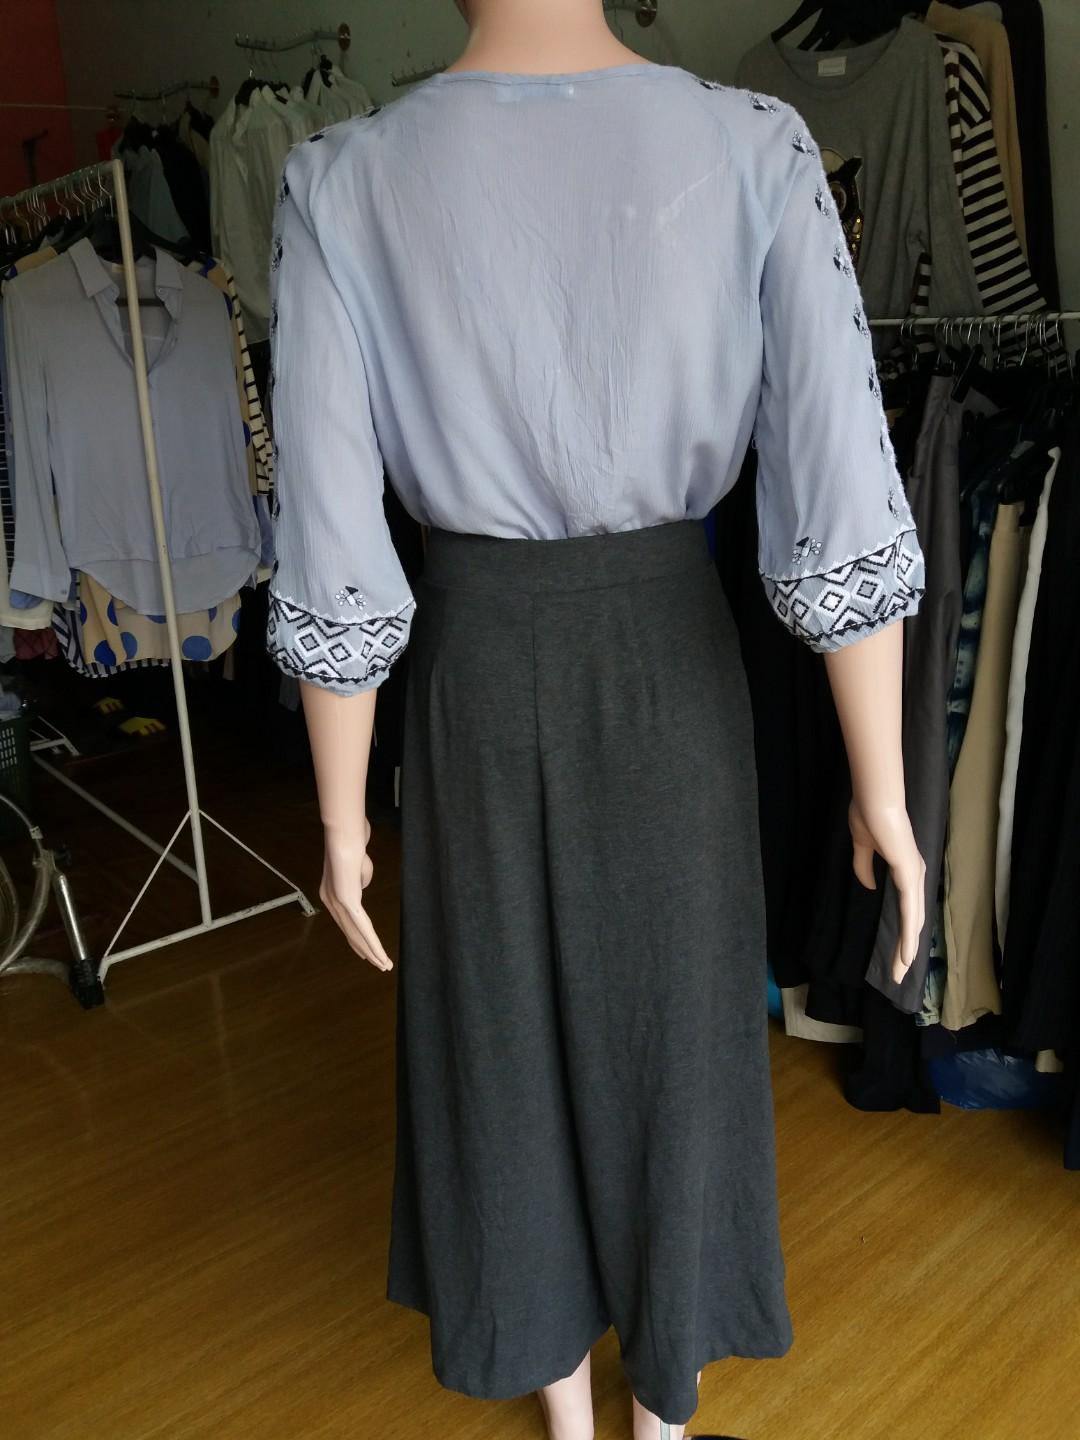 Kulot uniqlo s & blouse korea m